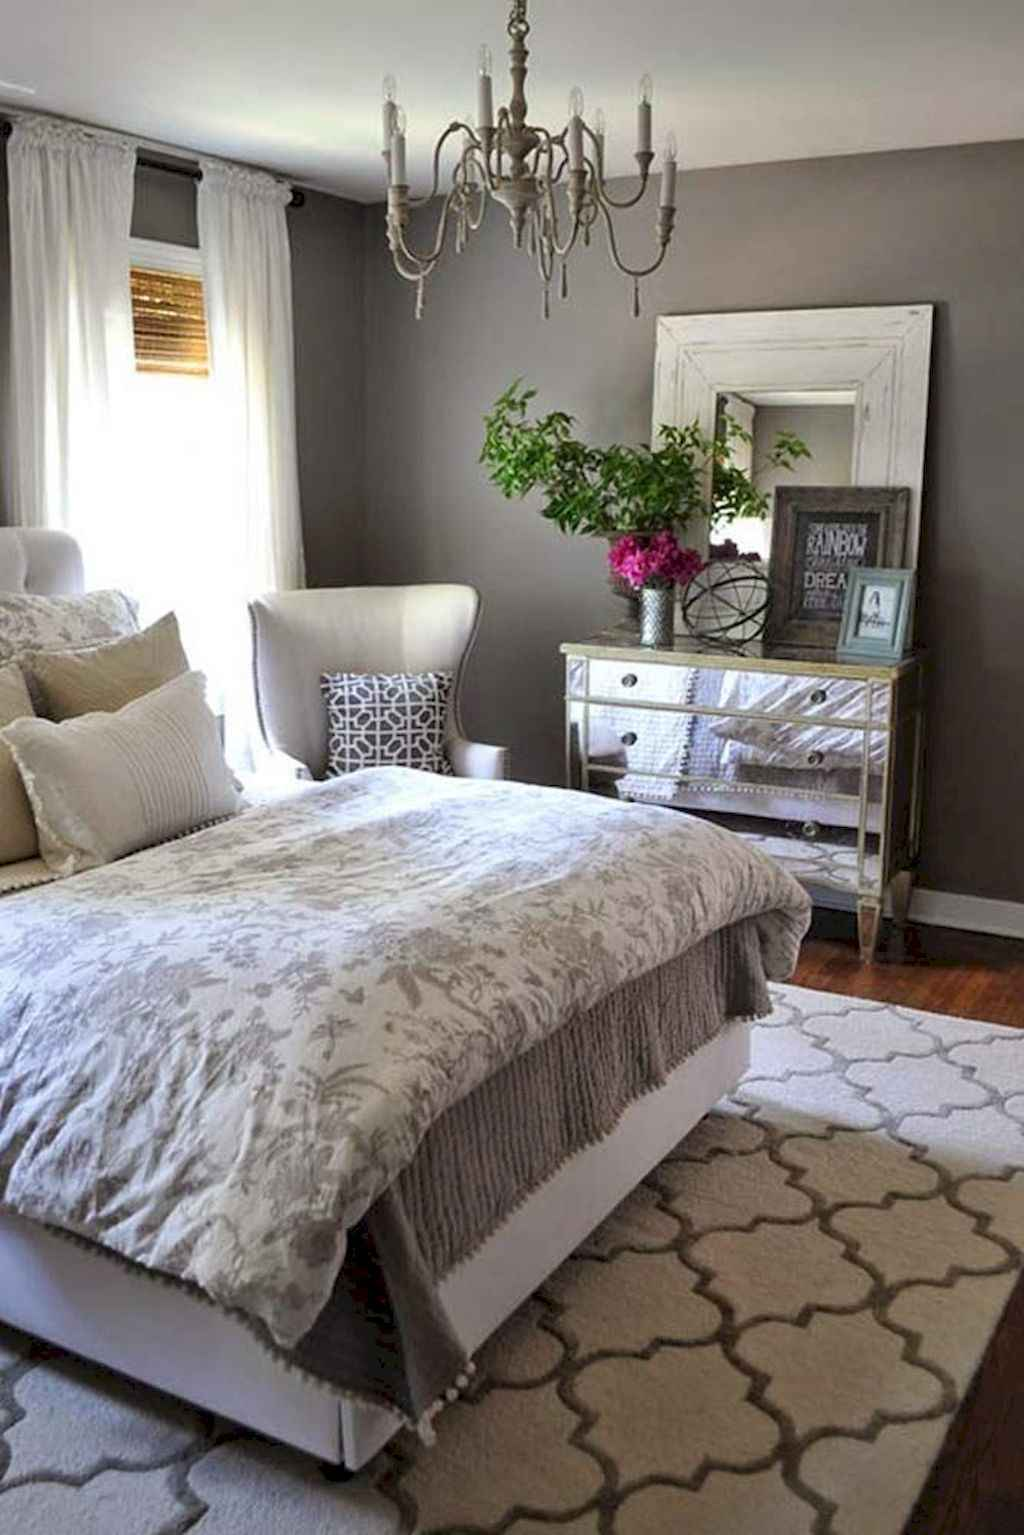 Couples first apartment decorating ideas 107 homespecially - First apartment decorating ...